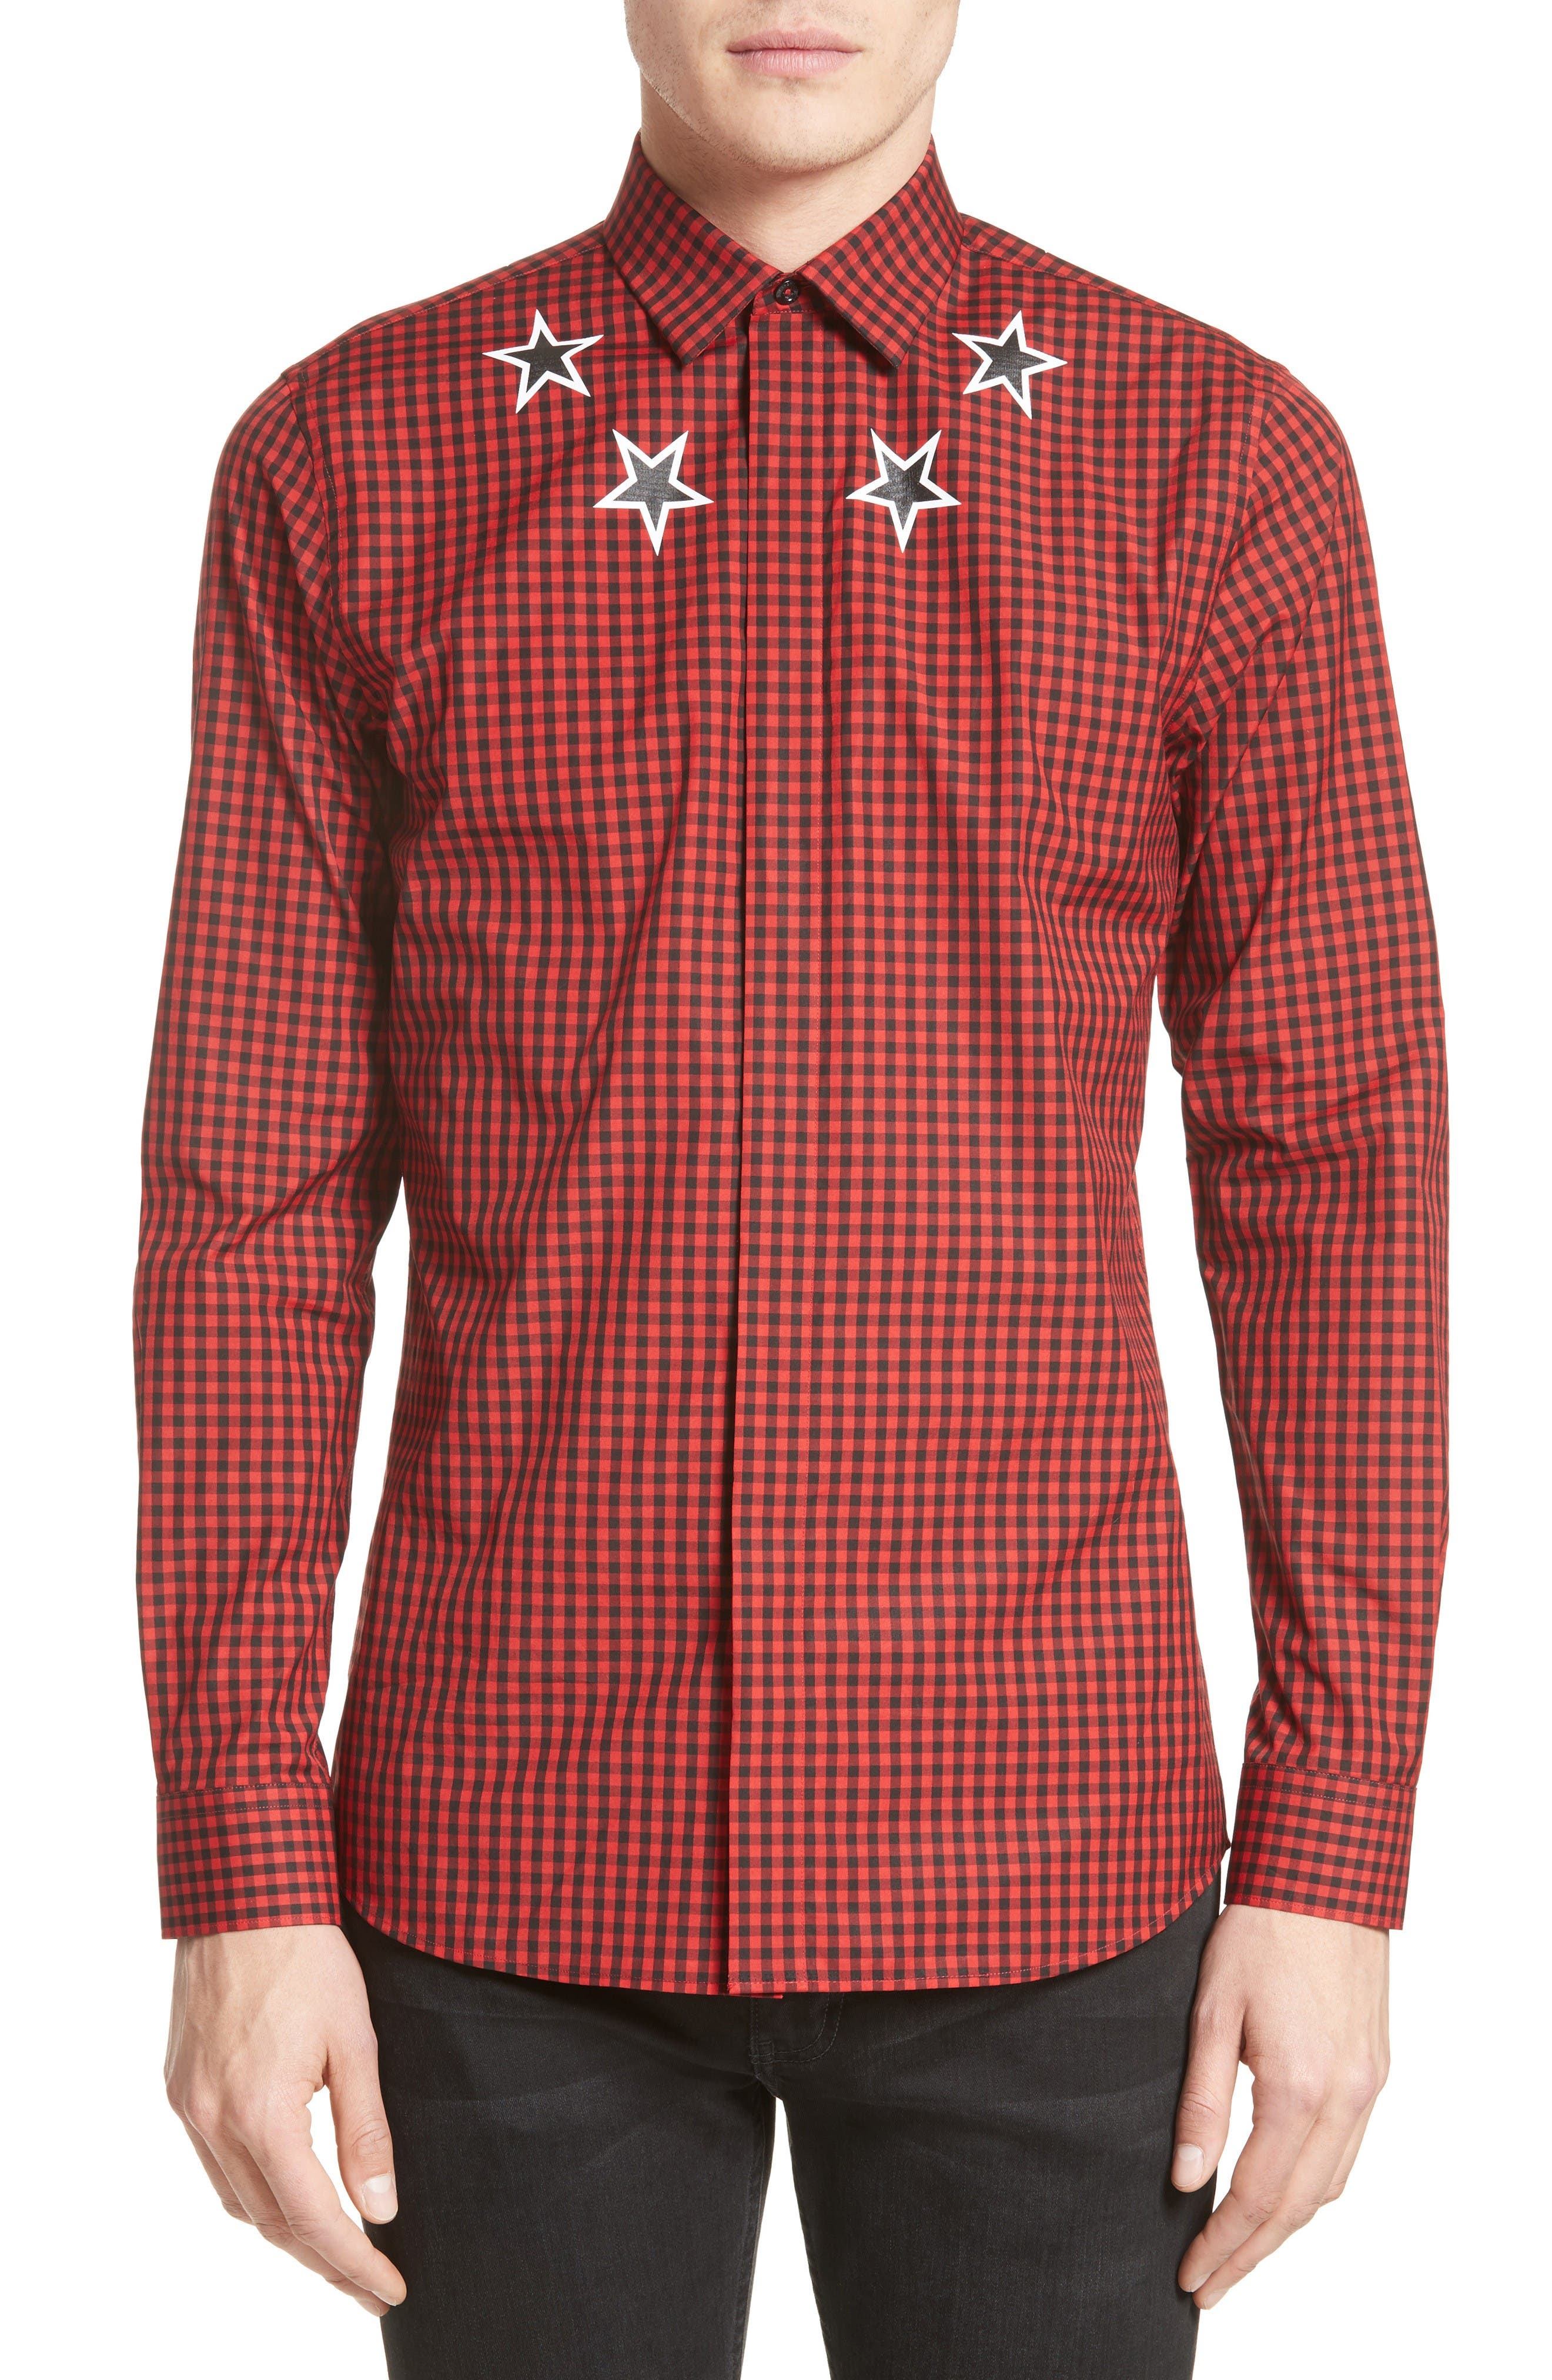 Main Image - Givenchy Extra Trim Fit Star Gingham Sport Shirt